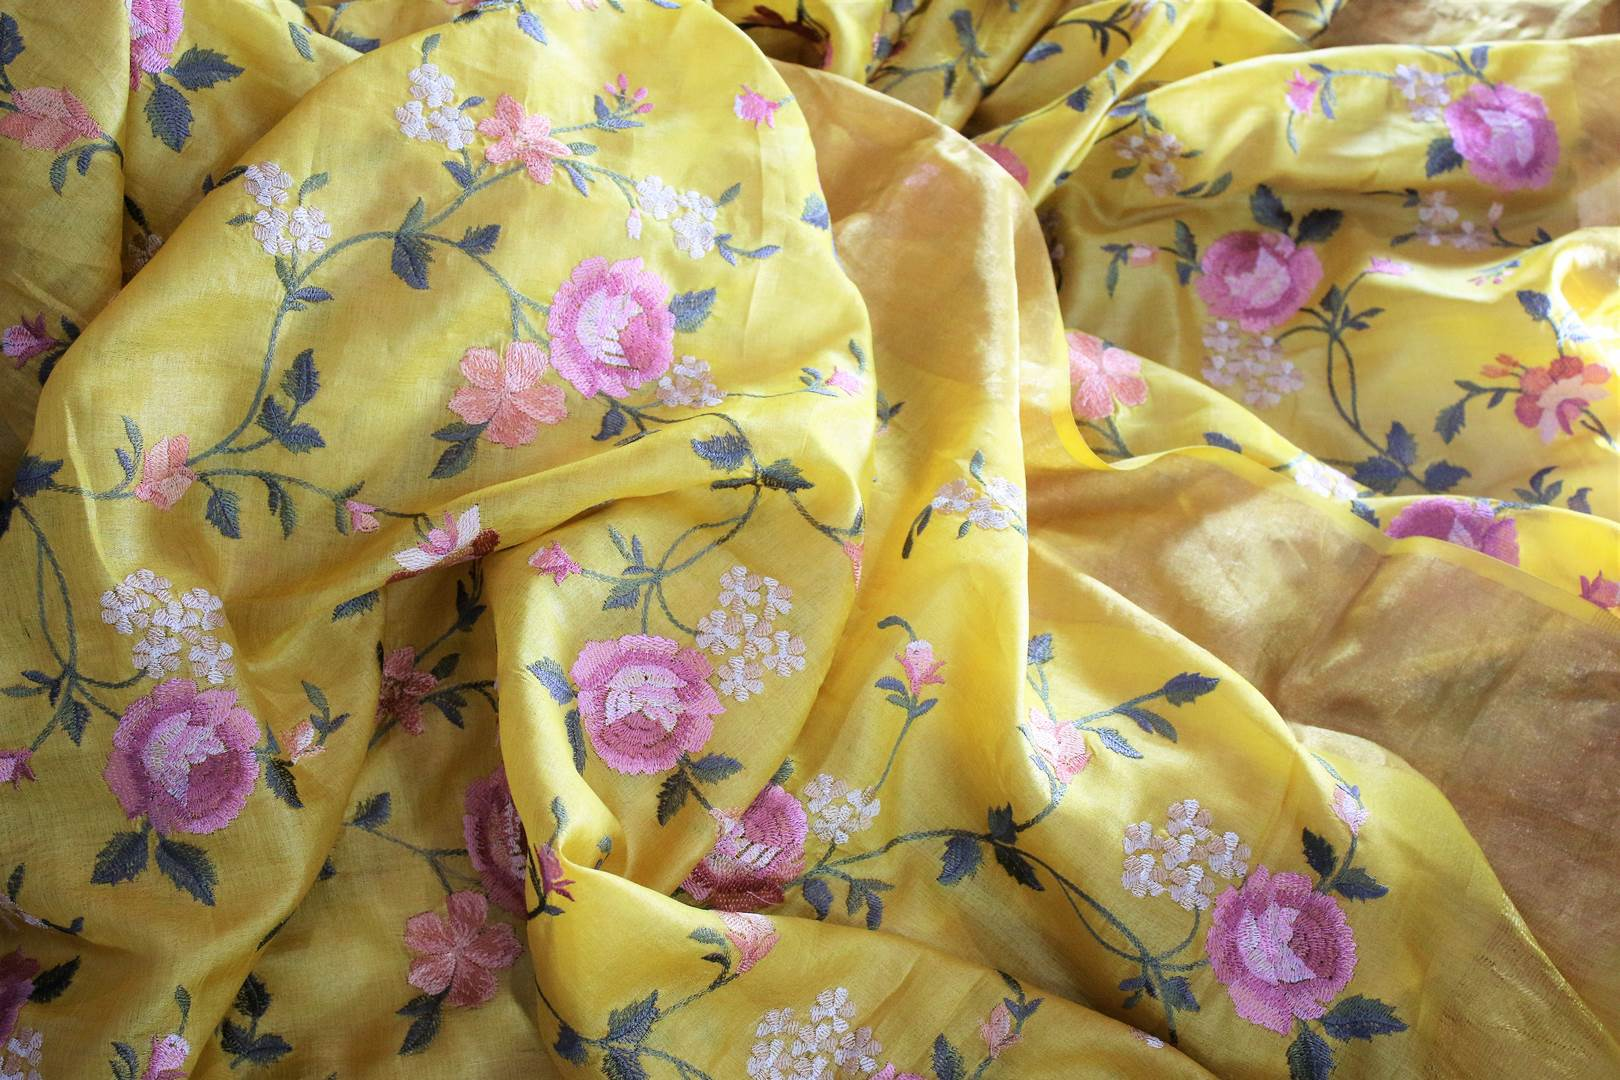 Buy bright yellow silk linen saree online in USA with resham embroidery. Beautifully decorated with floral embroidery and golden border, the saree makes a great choice for daytime festivities or parties. Choose your favorite Indian saree from an exclusive collection available at Pure Elegance clothing store in USA.-details